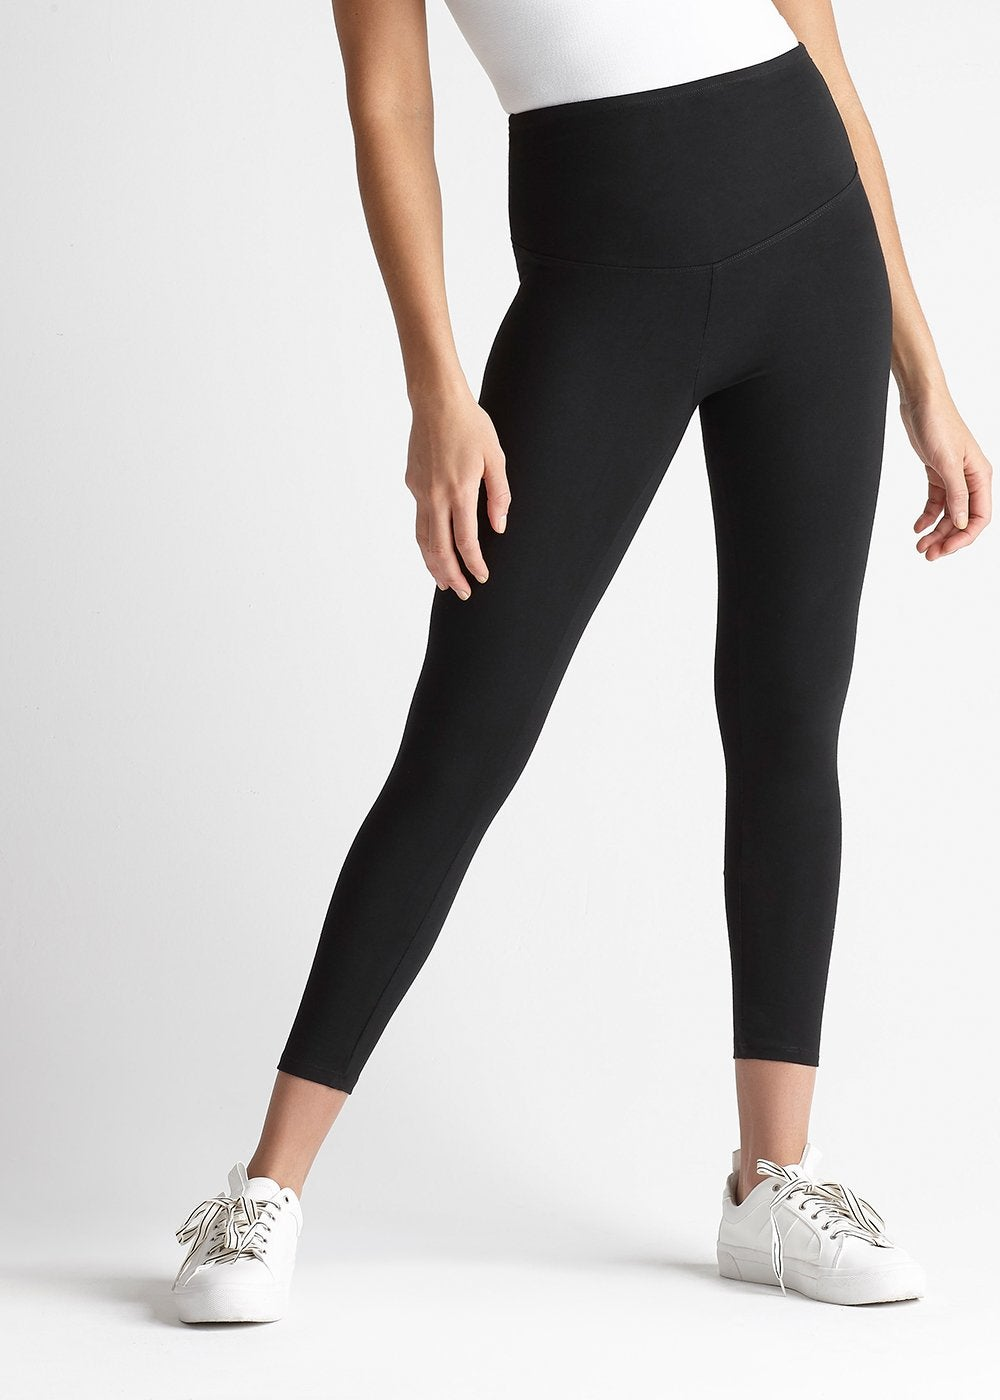 Yummie Gloria Skimmer Cotton Stretch Shaping Legging